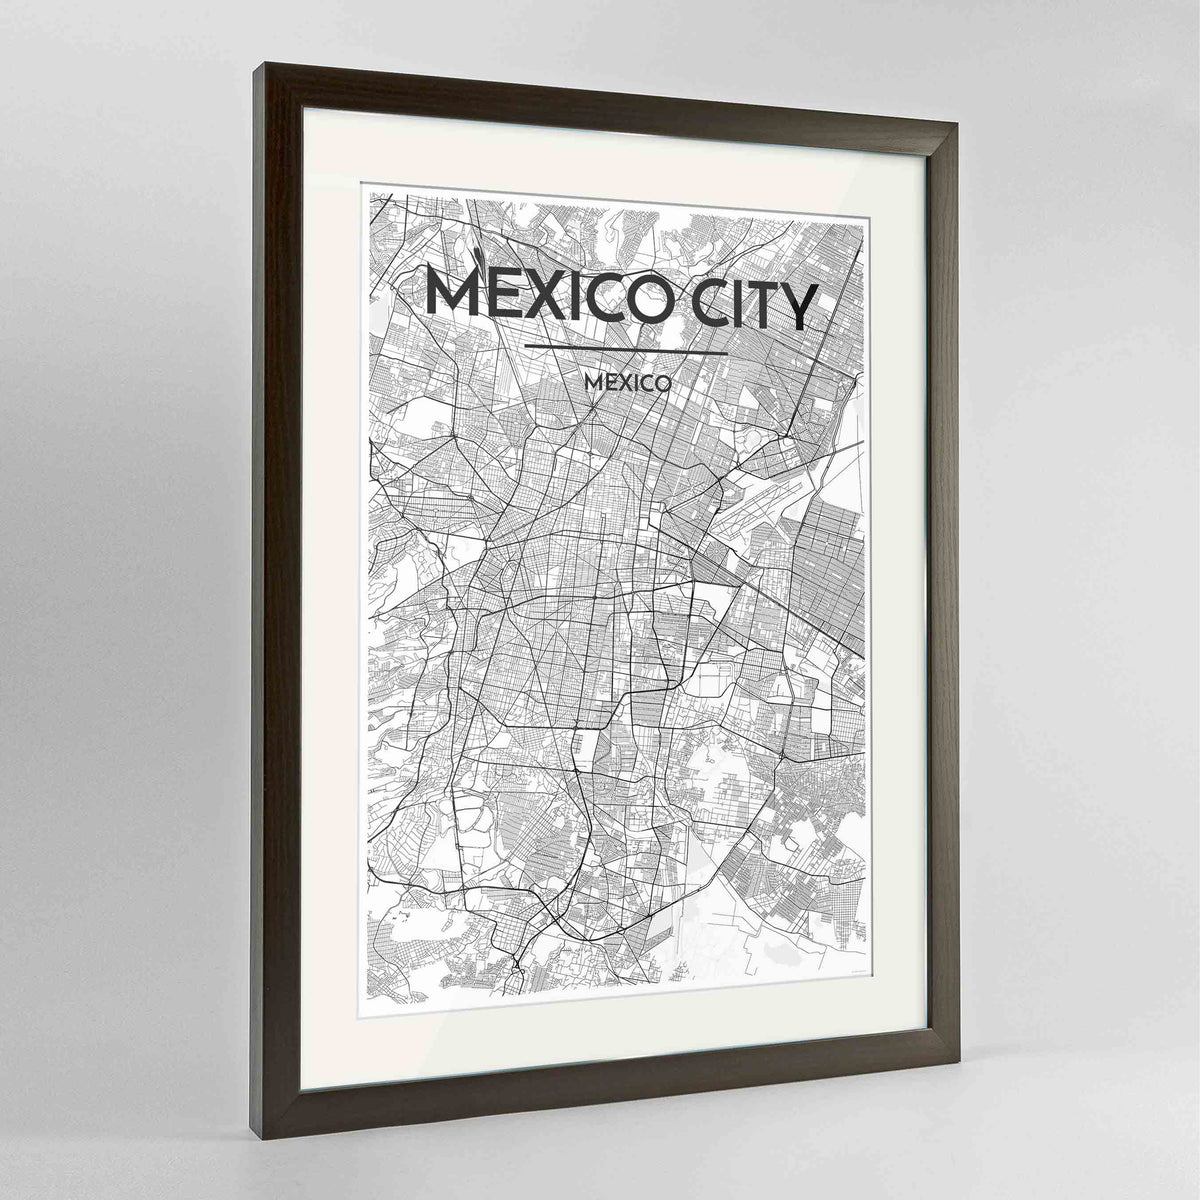 "Framed Mexico City Map Art Print 24x36"" Contemporary Walnut frame Point Two Design Group"